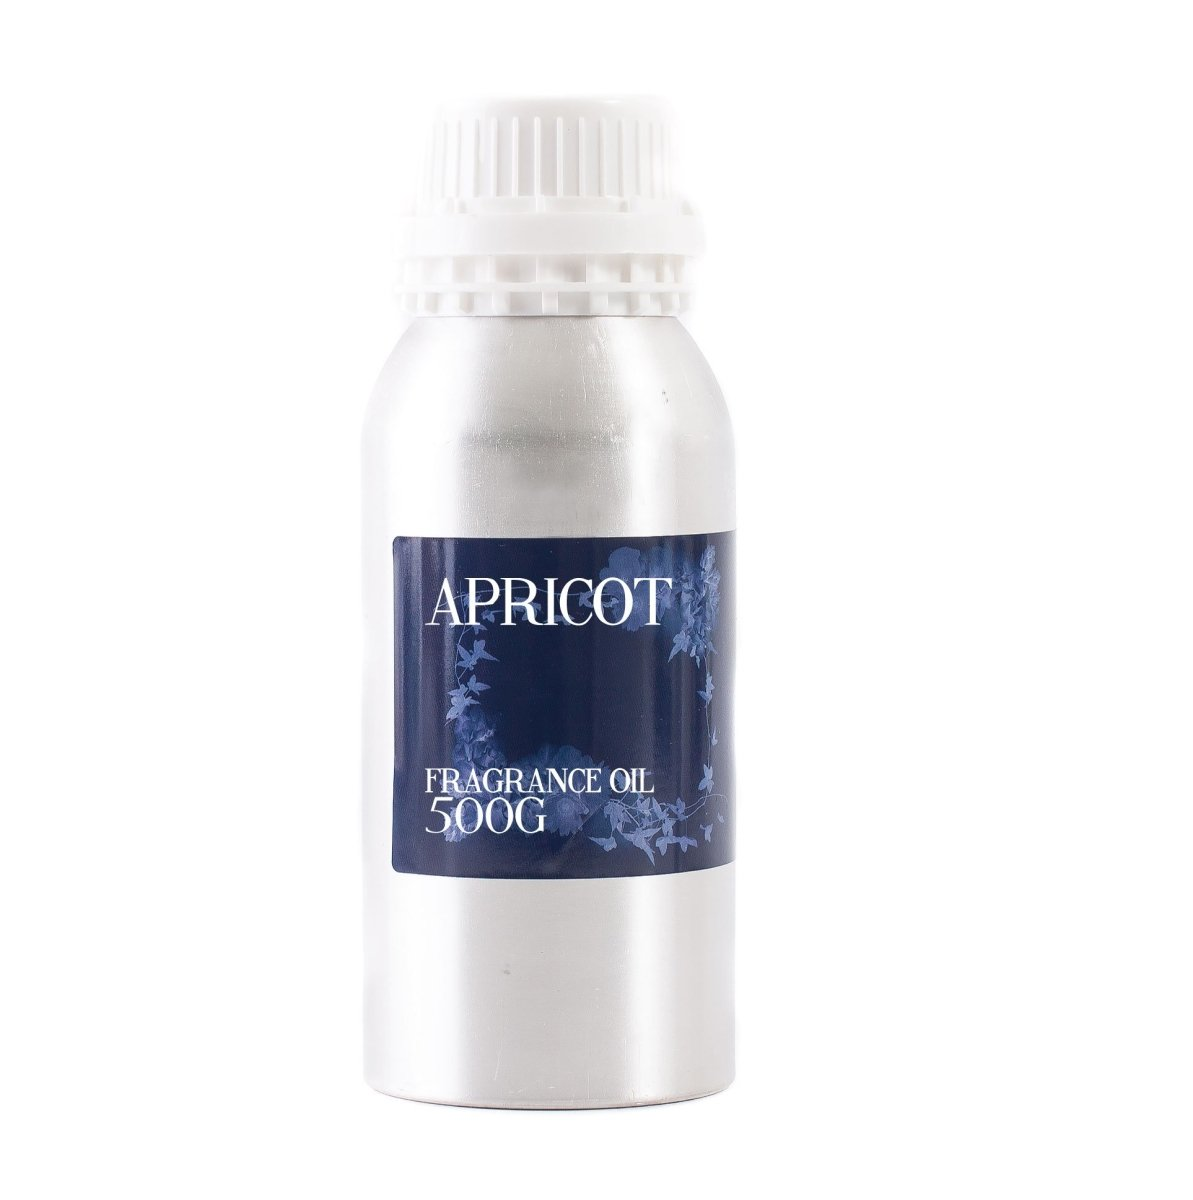 Apricot Fragrance Oil - Mystic Moments UK